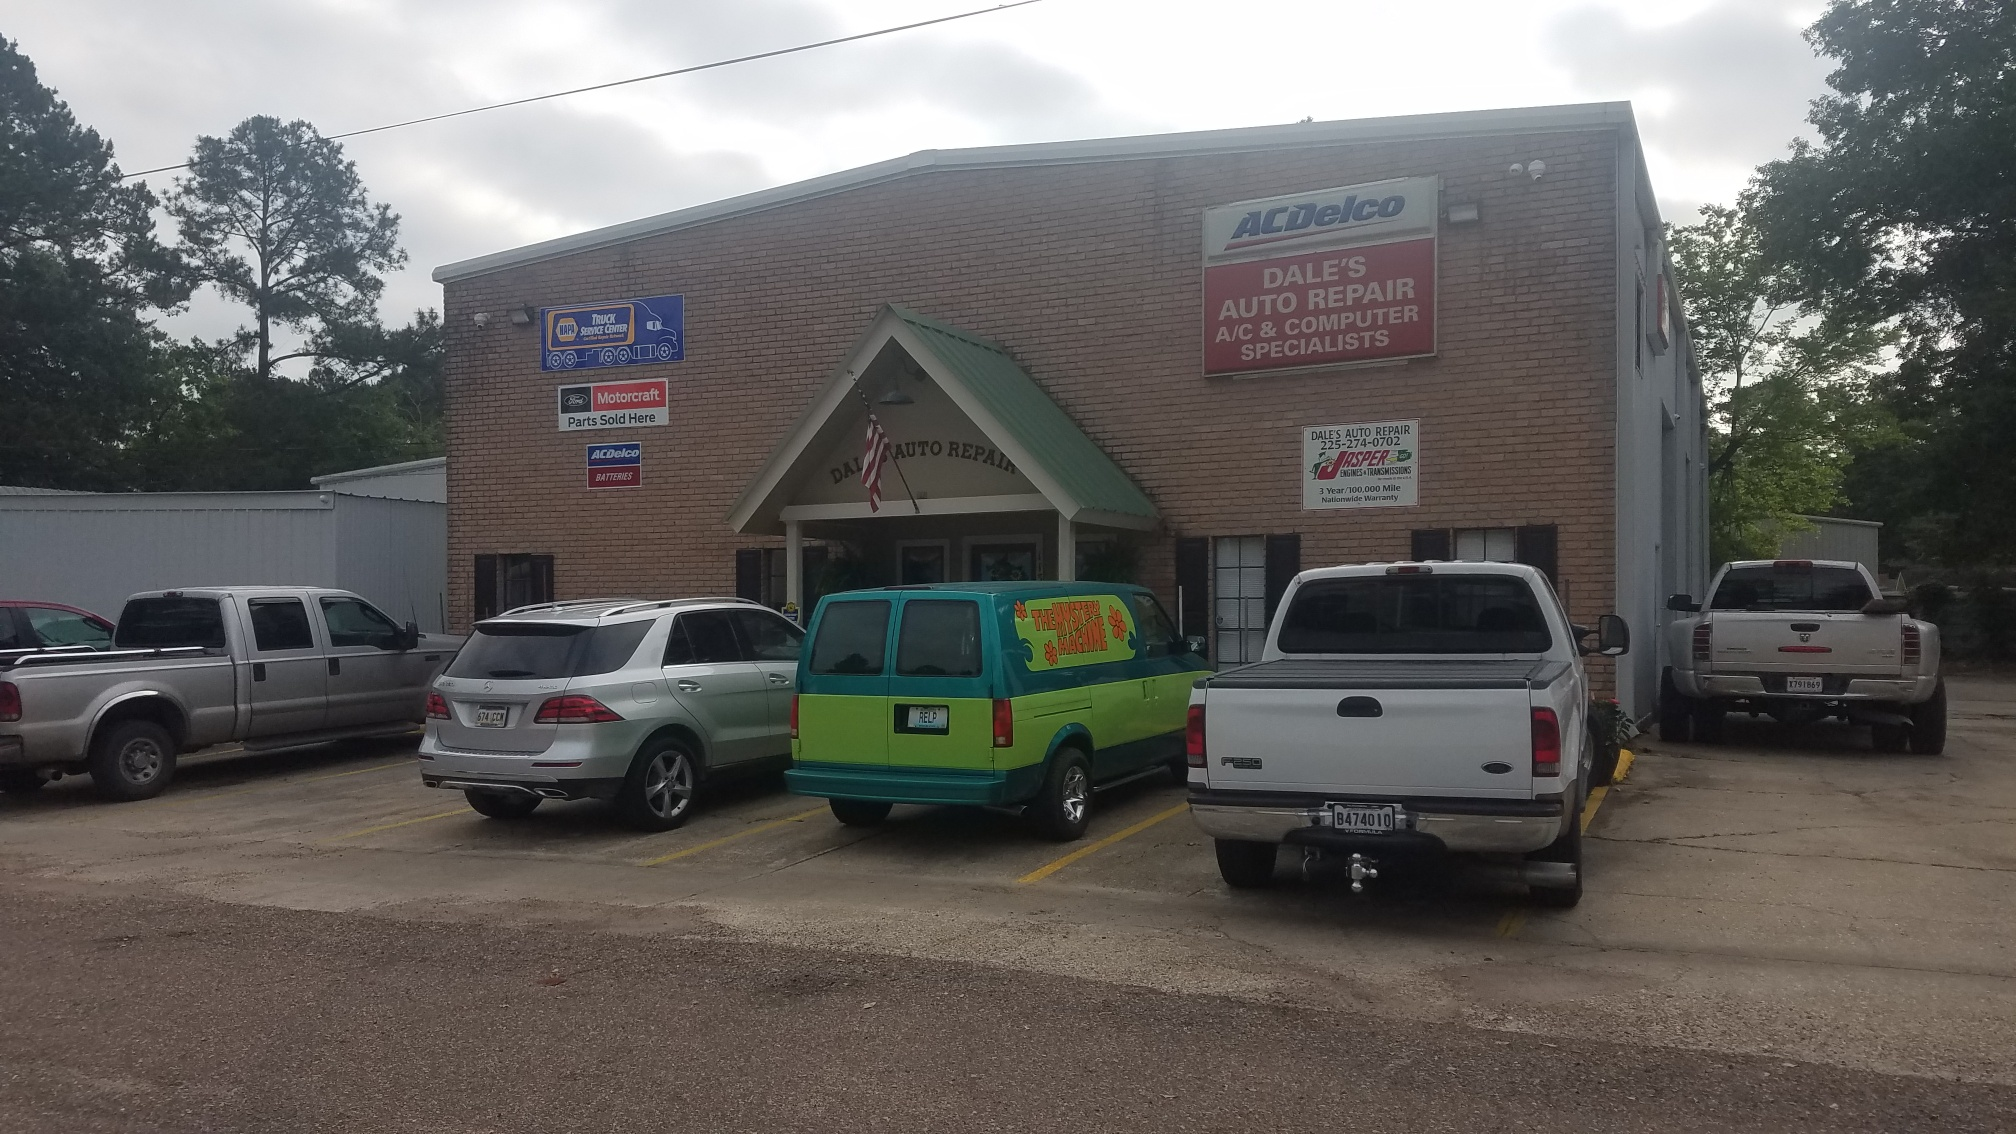 Call Dale's Auto Repair today to schedule your next vehicle appointment